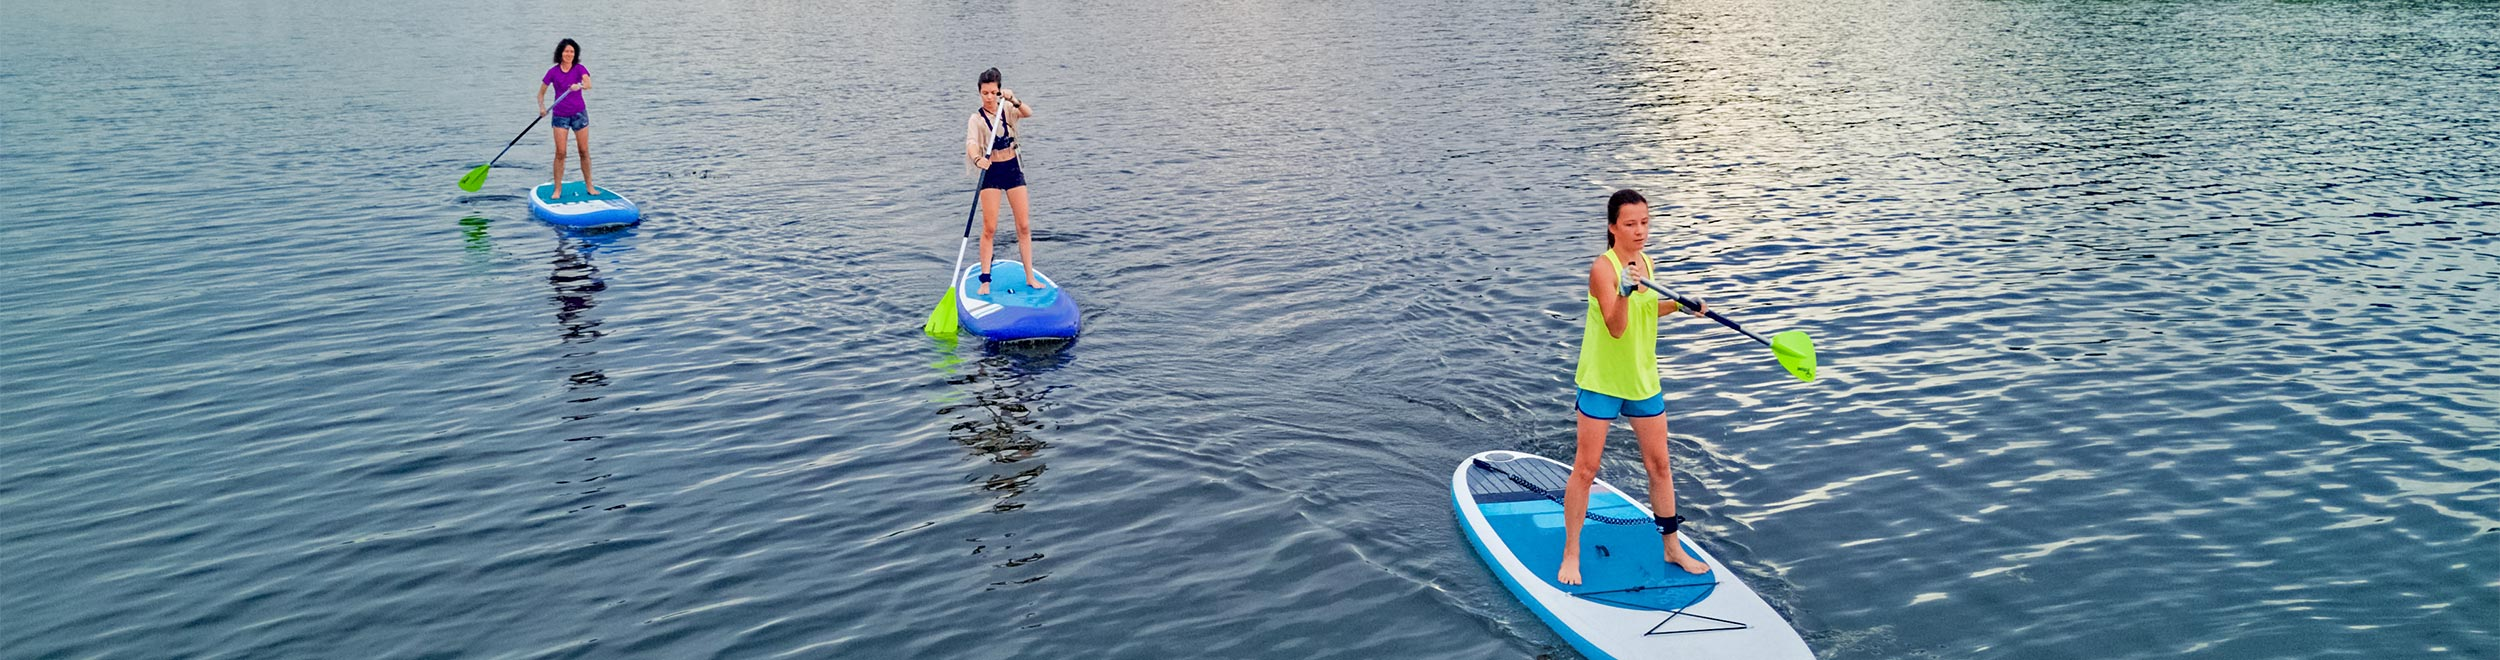 stand-up-paddling-banner